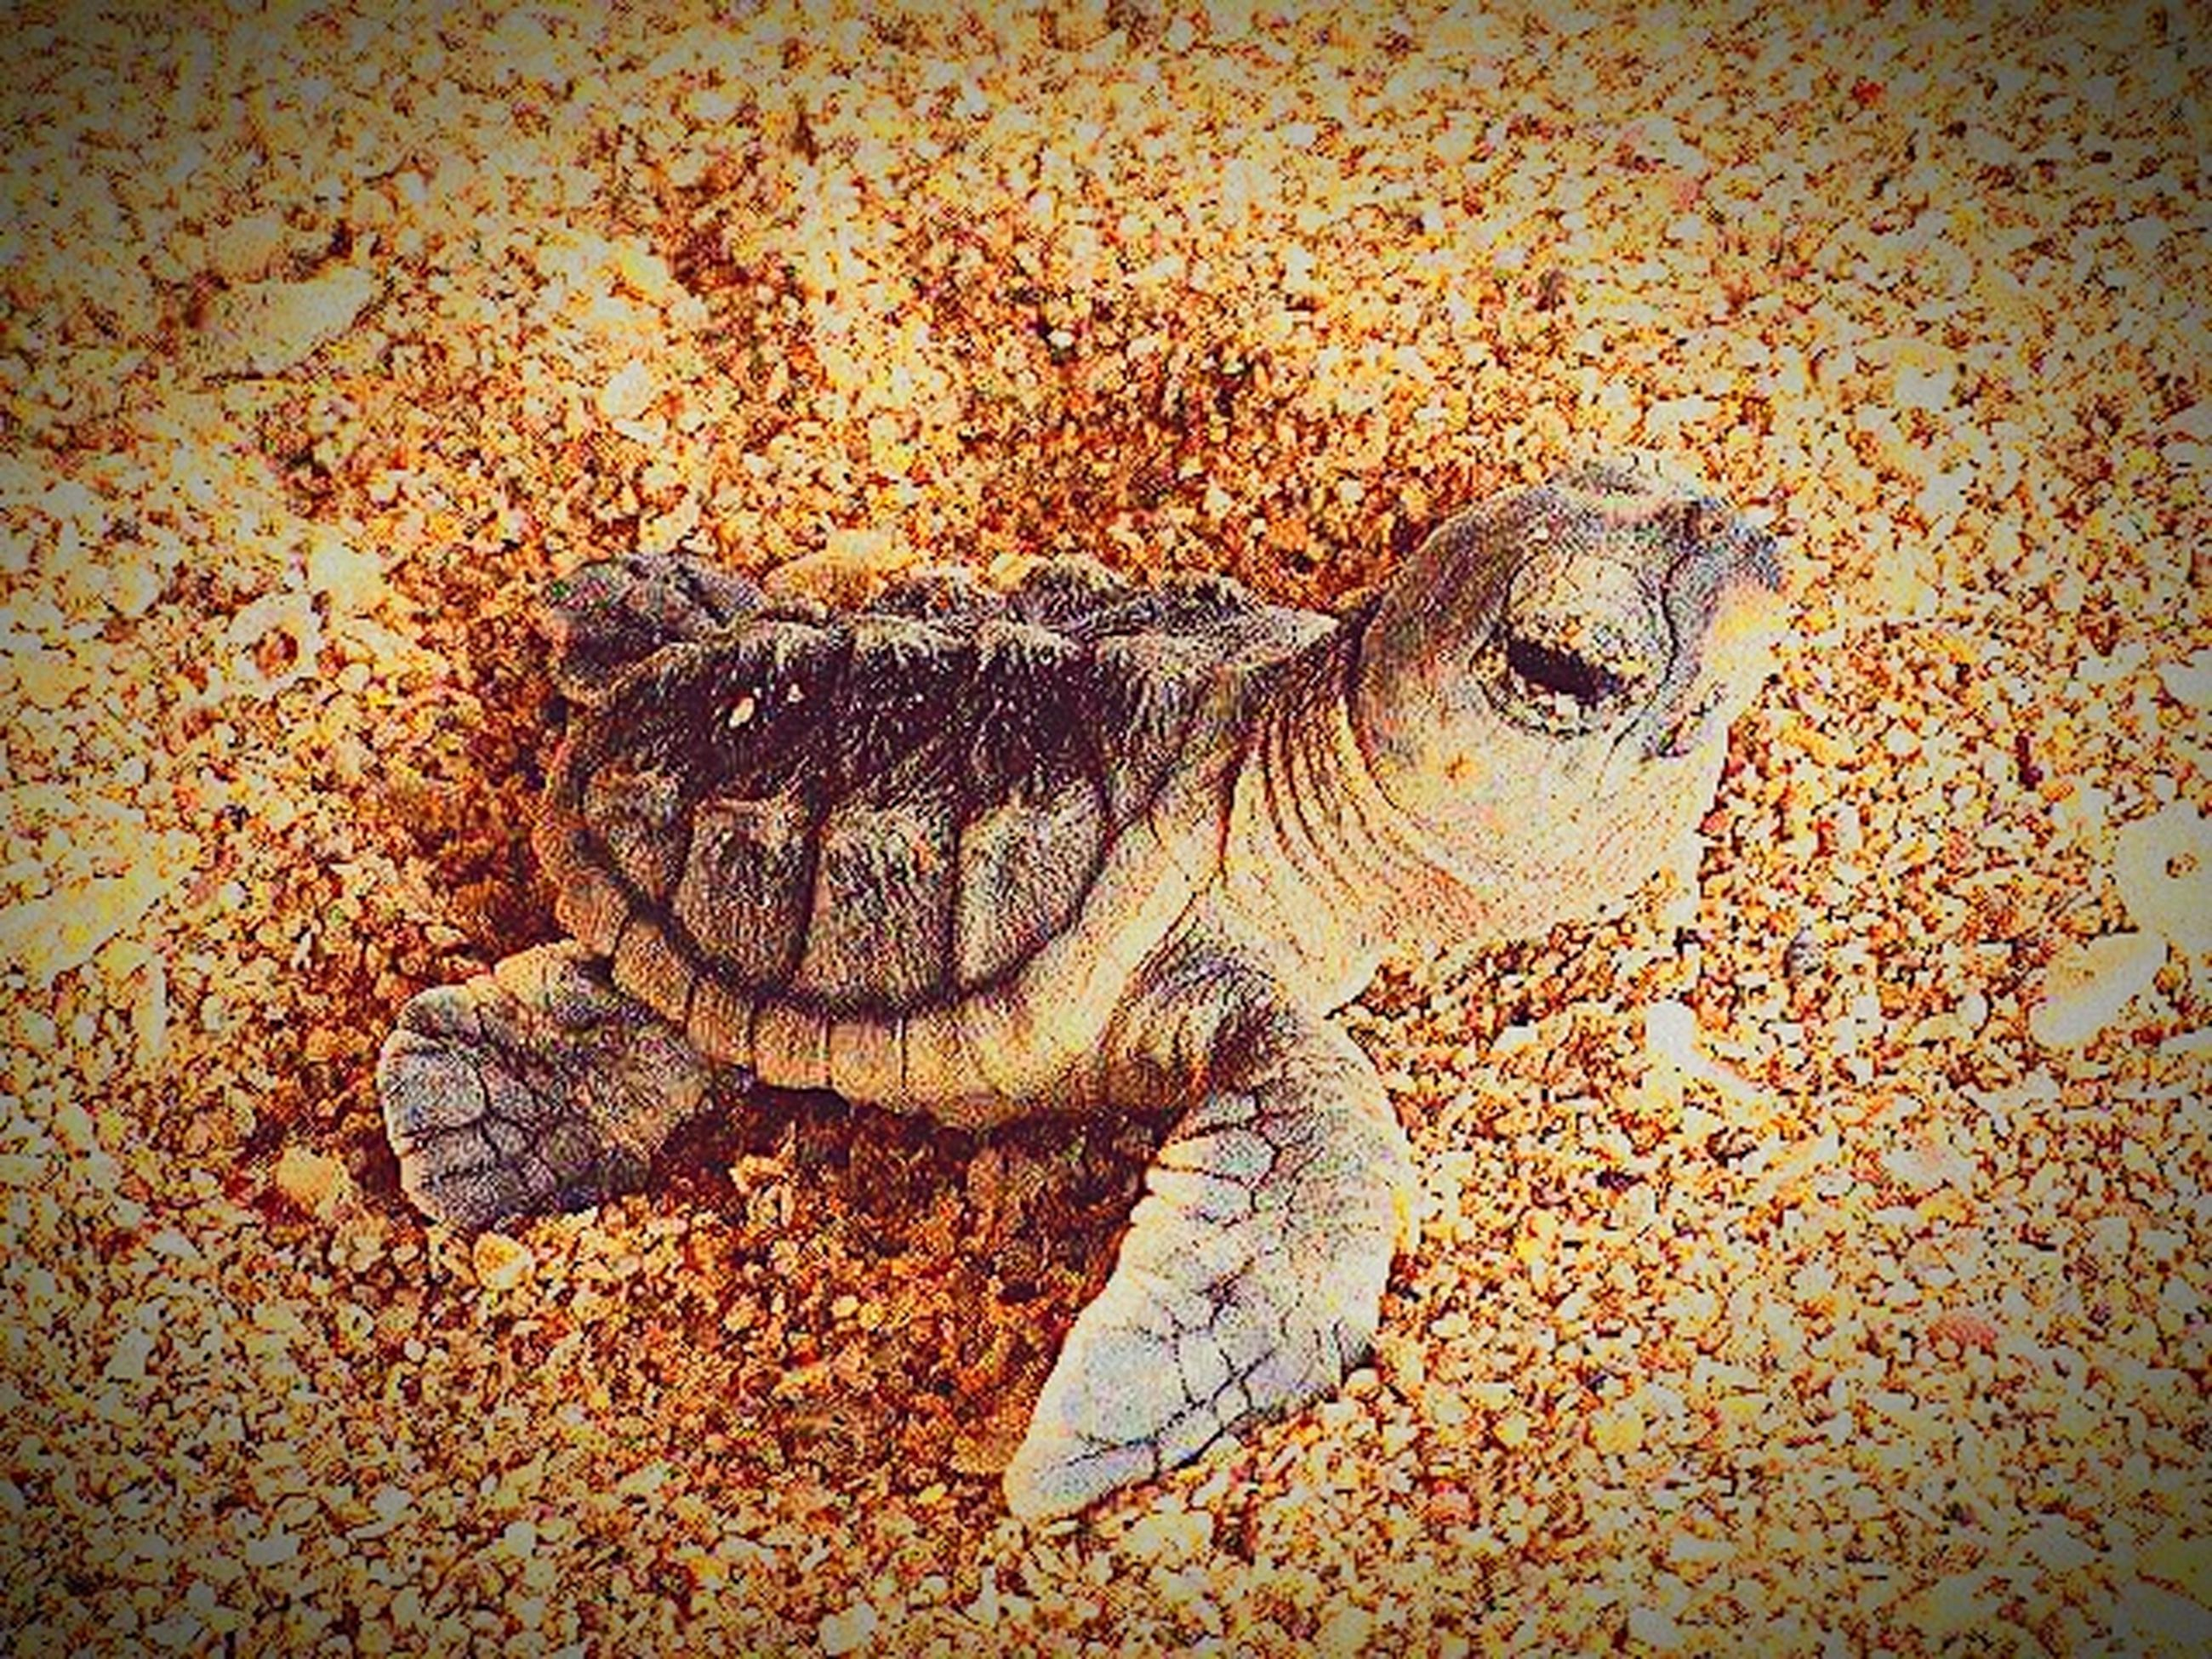 animal themes, one animal, animals in the wild, wildlife, high angle view, close-up, outdoors, no people, animal head, sand, day, sunlight, animal body part, nature, street, dead animal, full length, zoology, ground, side view